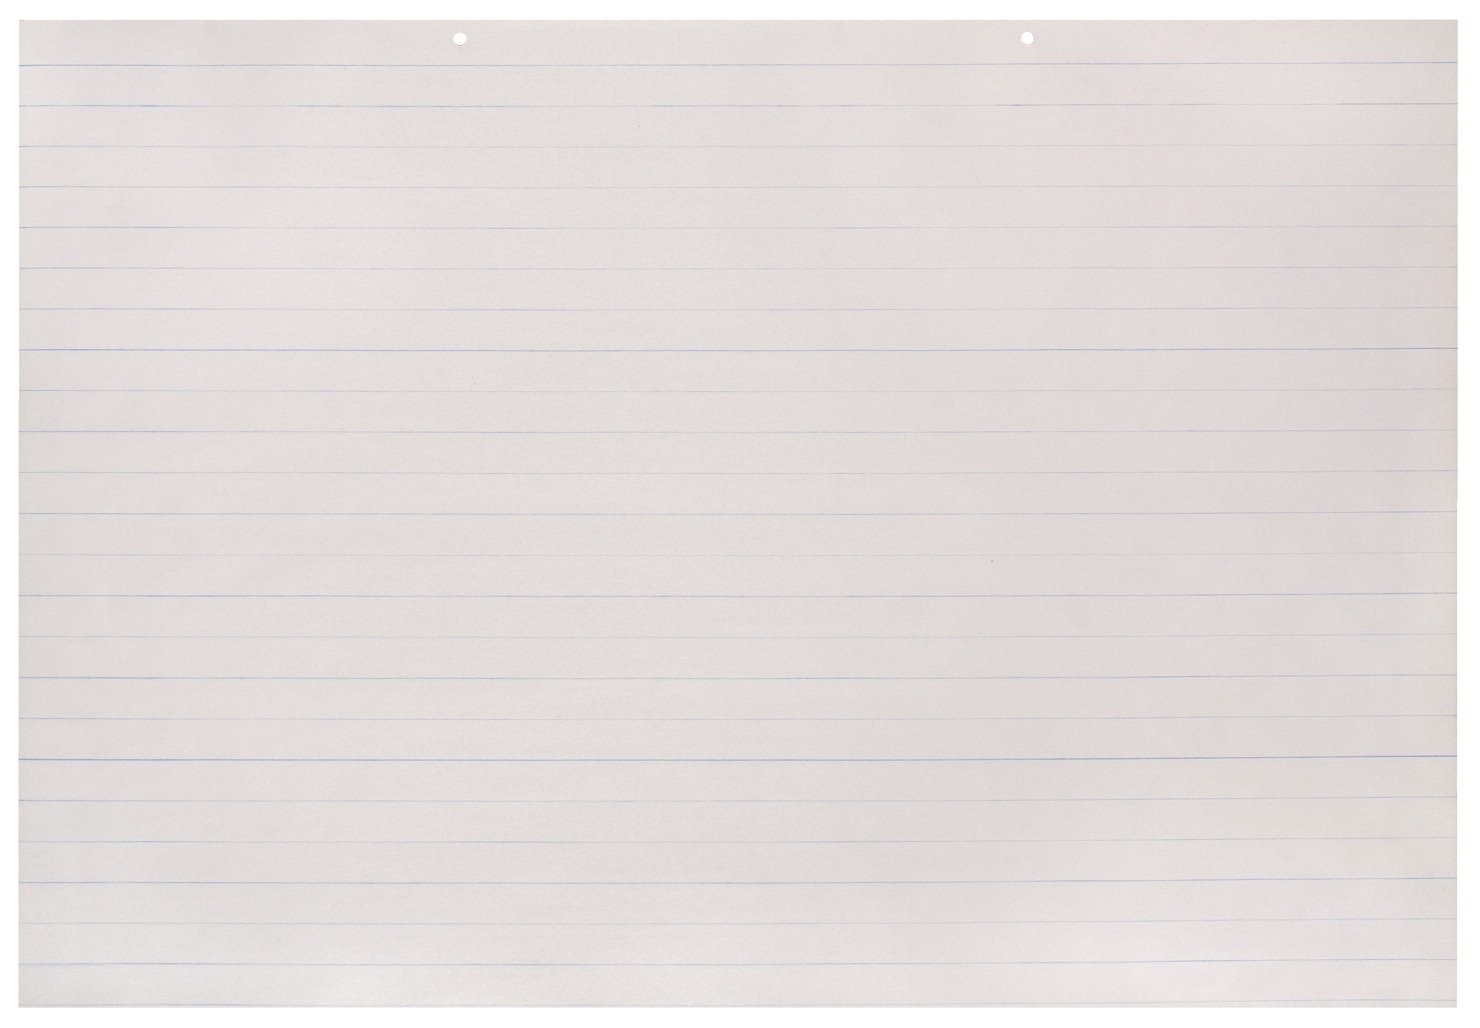 School Smart Primary Chart Newsprint Paper, 1 Inch Rule, 36 x 24 Inches, 100 Sheets